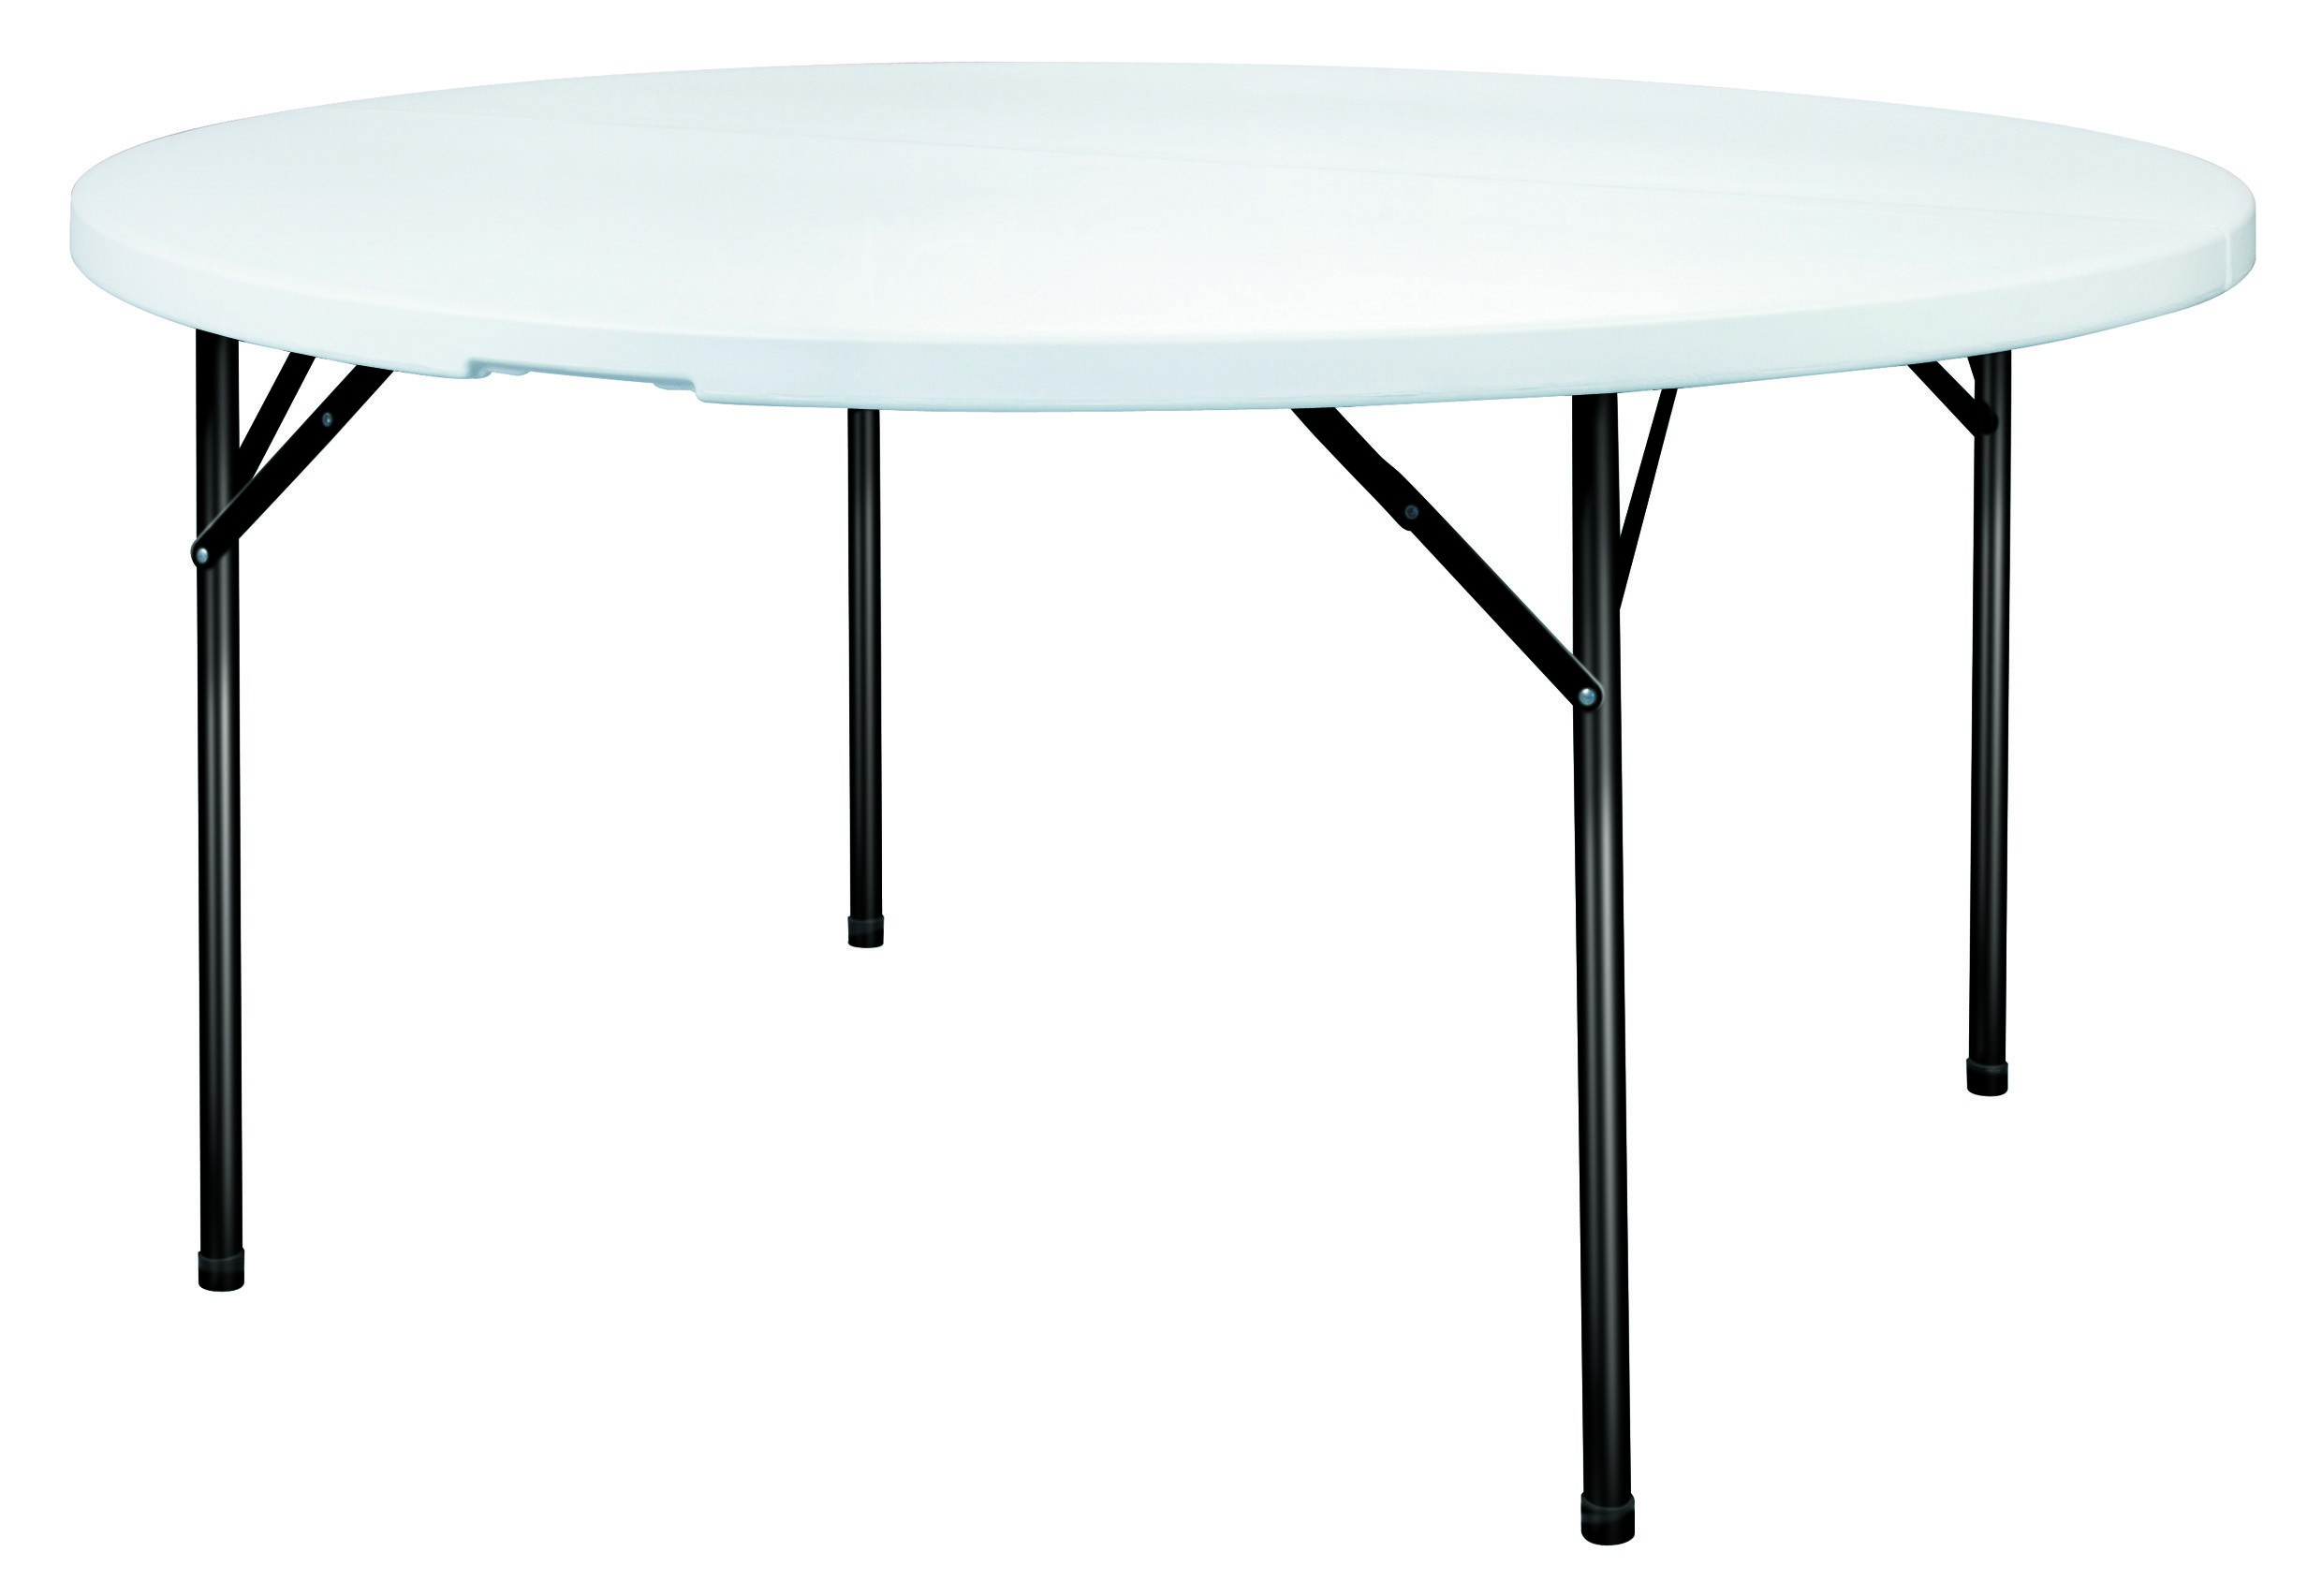 Table Pliante Légère Table Ronde Polypro Table En Polypropylène Table Pliante En